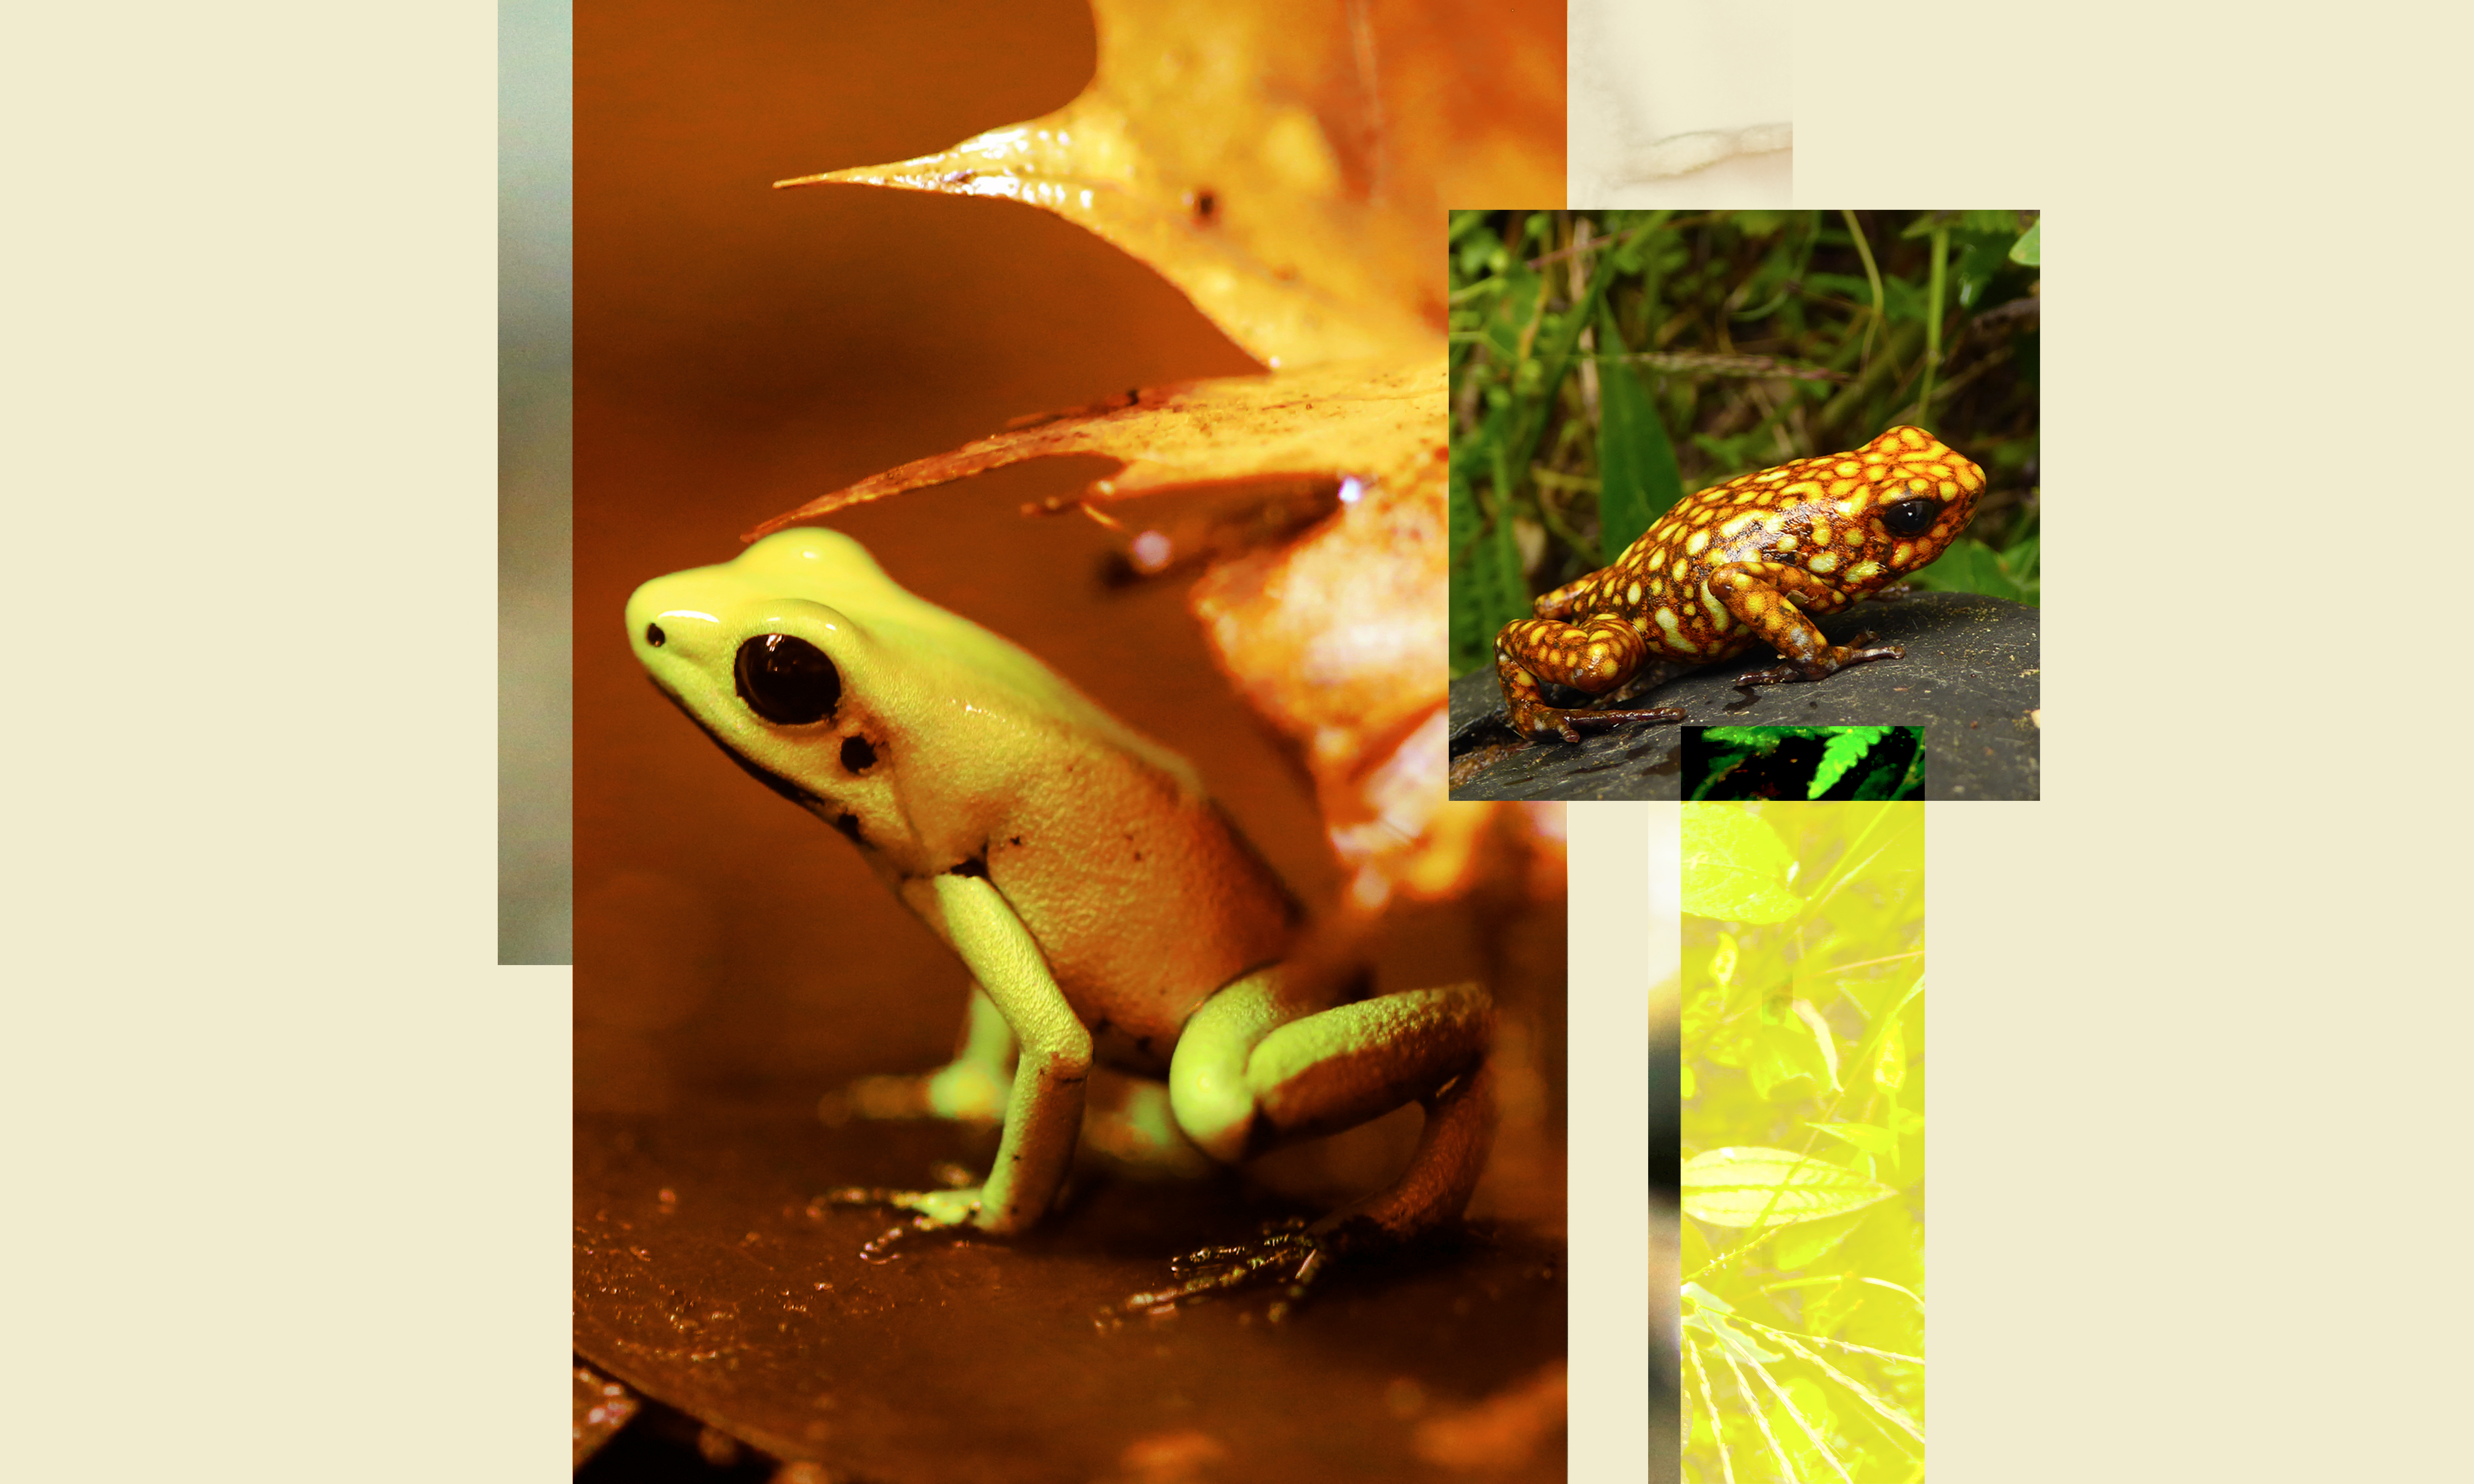 A golden poison frog (left) and a Diablito poison frog (right).